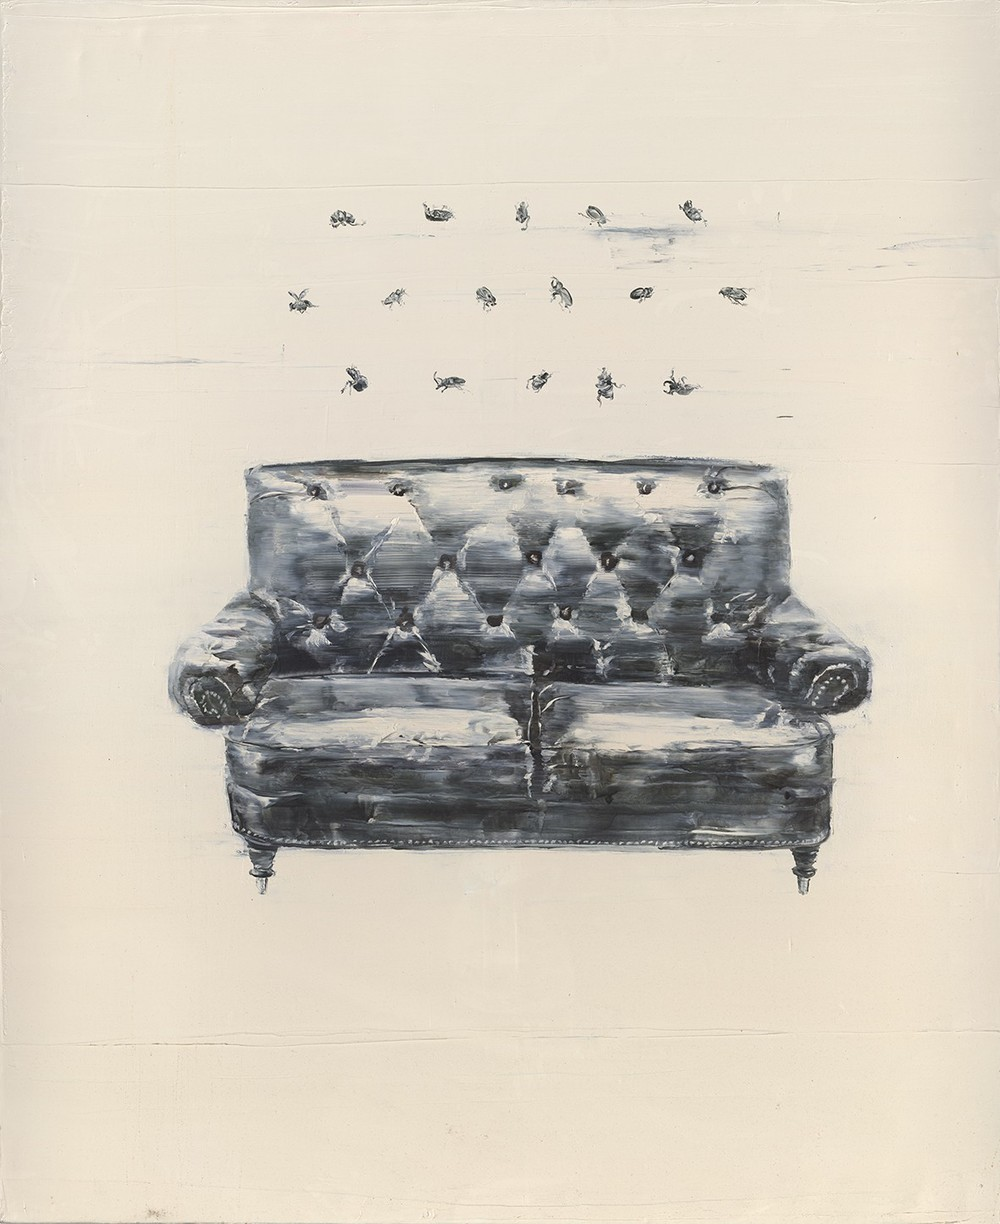 Tu Xi 涂曦, Sofa and Beetles 沙发和甲虫, 2012, Oil on canvas 布面油画, 180 x 150 cm